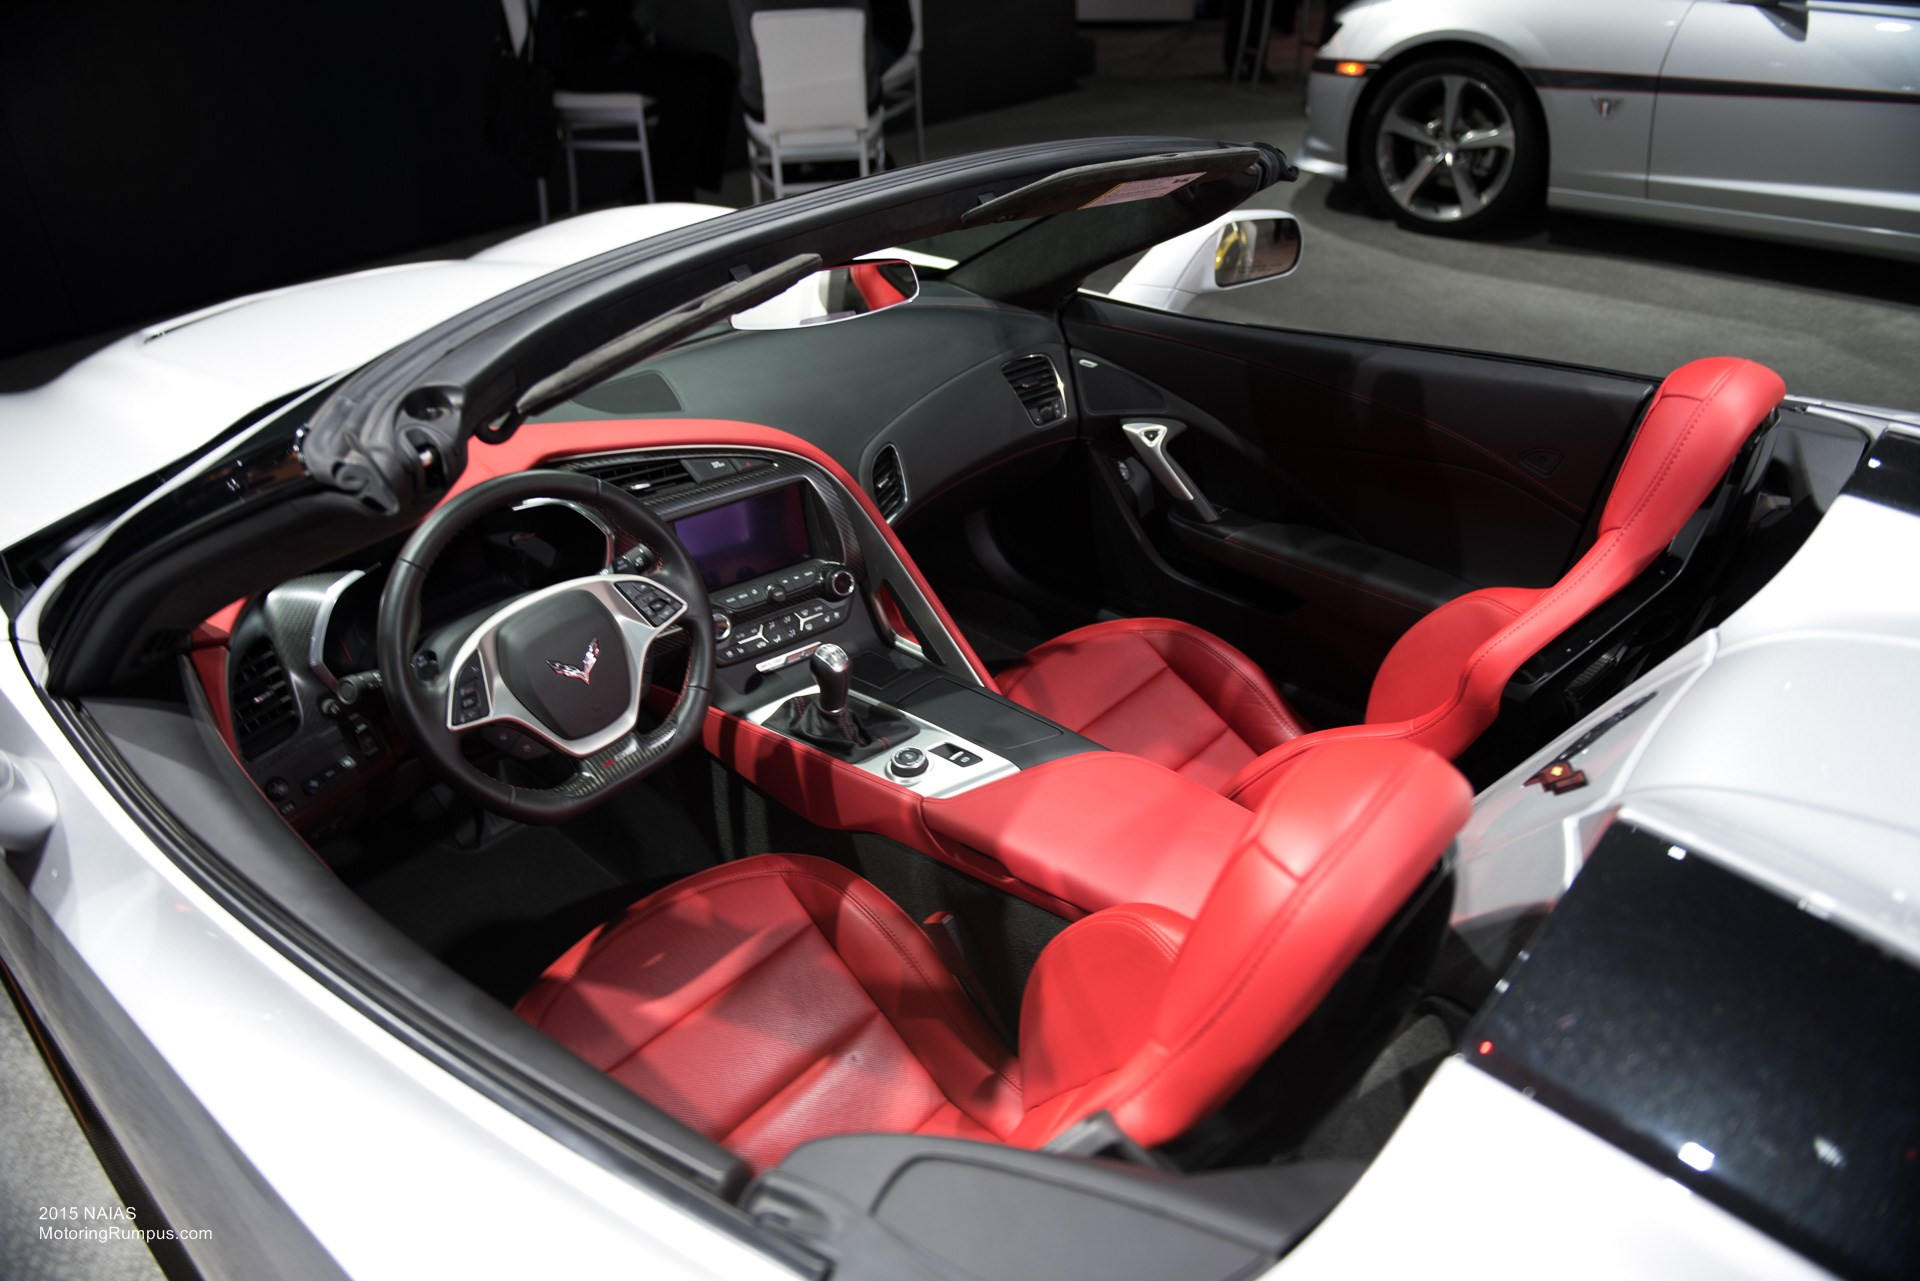 2015 NAIAS Chevy Corvette Stingray Convertible Red Interior